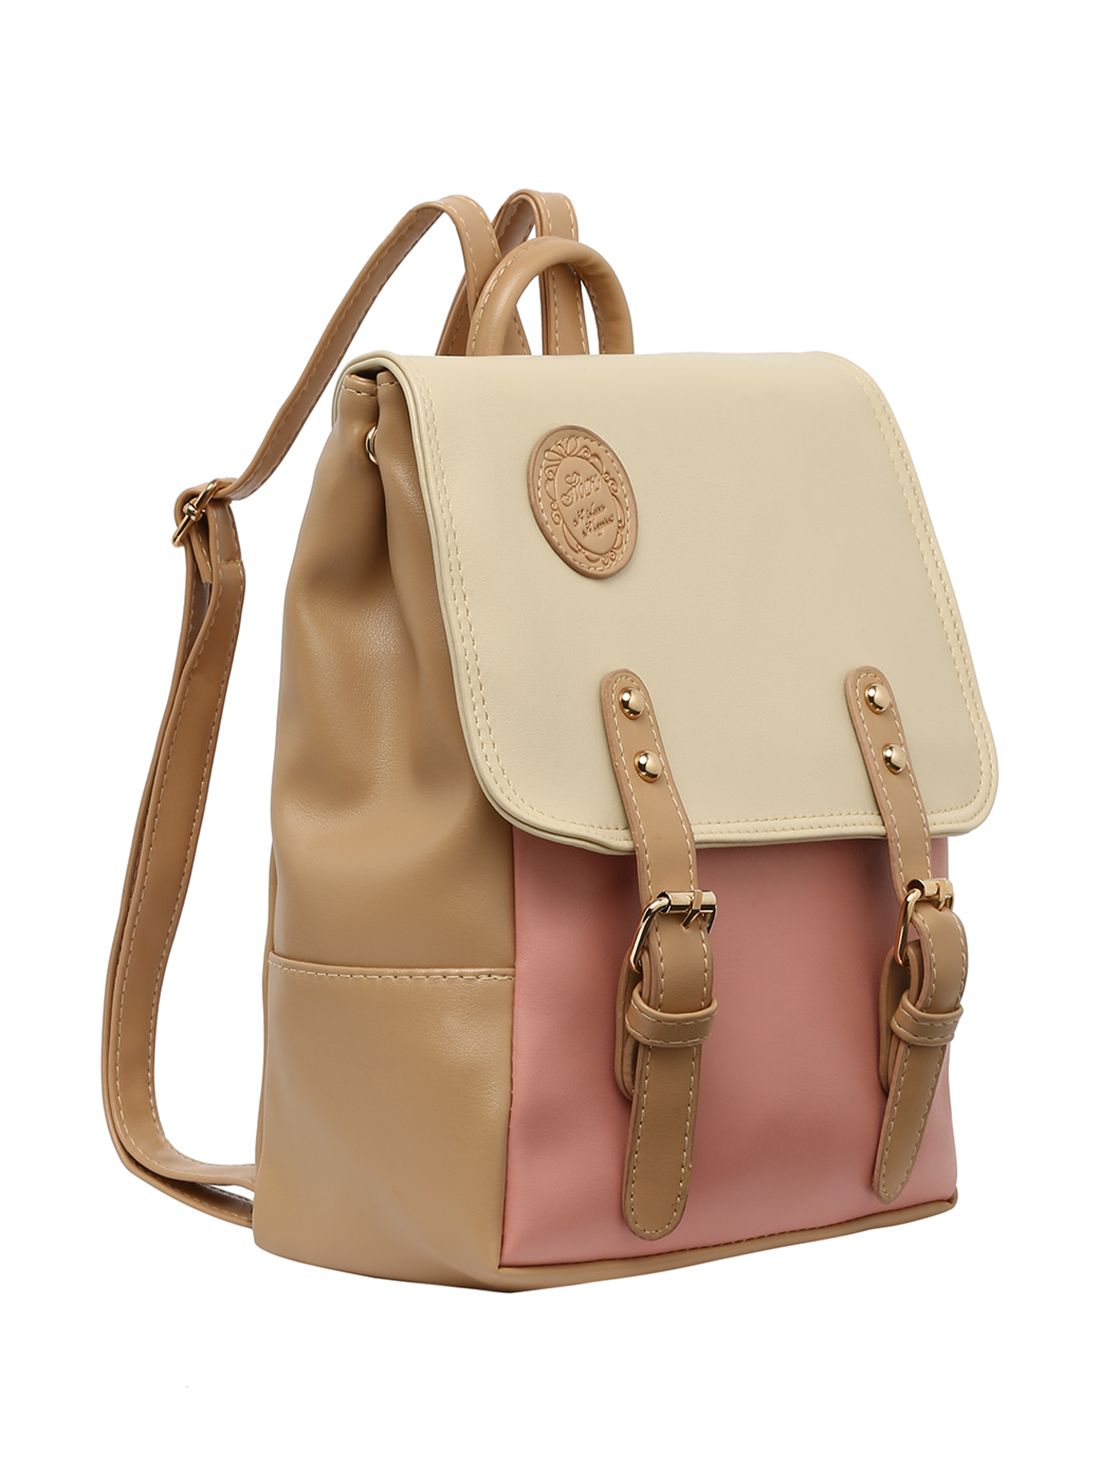 9e78fc815d Shop Color Block Buckle Flap Backpack online. SheIn offers Color Block  Buckle Flap Backpack & more to fit your fashionable needs.